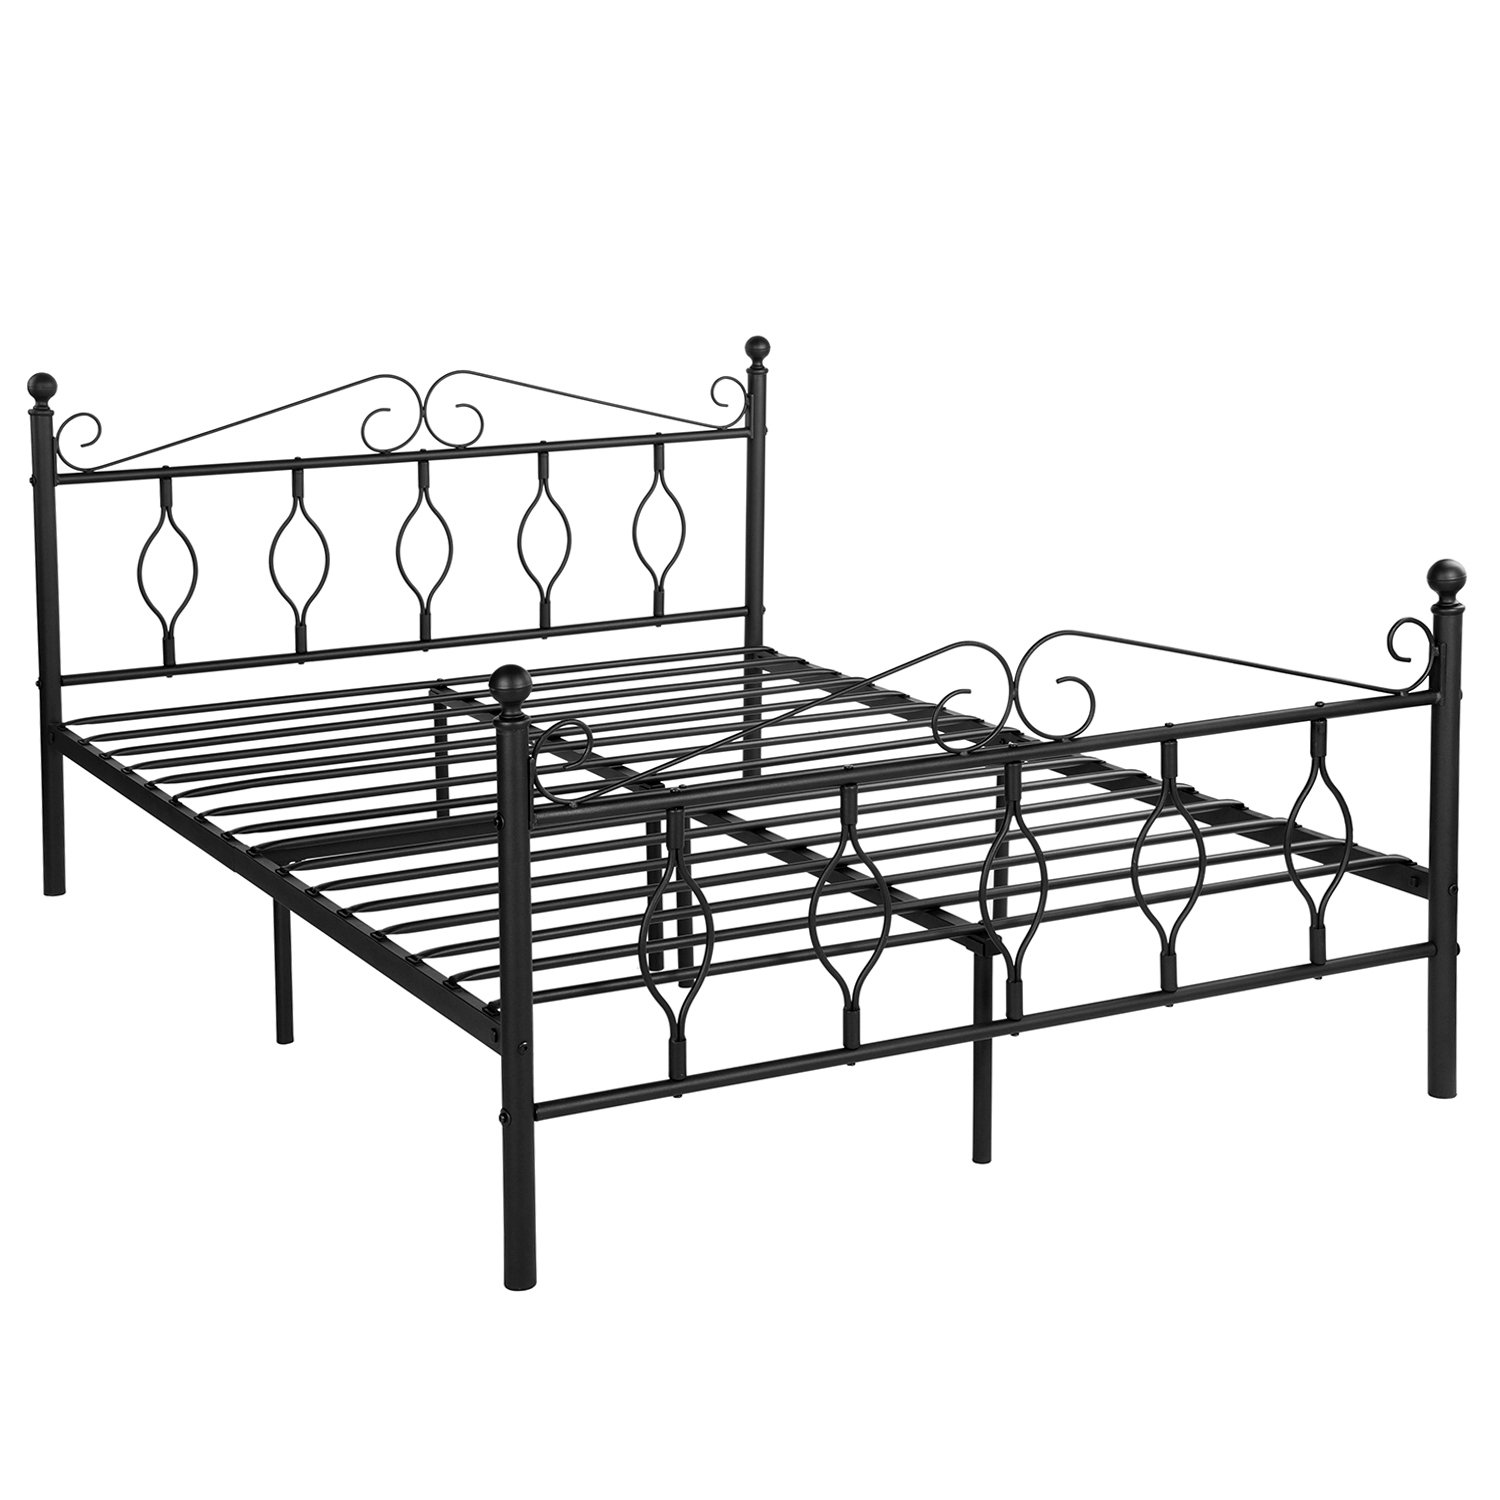 GreenForest Bed Frame Queen Size with Headboard Footboard Metal Platform Bed with Steel Slats Mattress Foundation No Box Spring Needed, Black by GreenForest